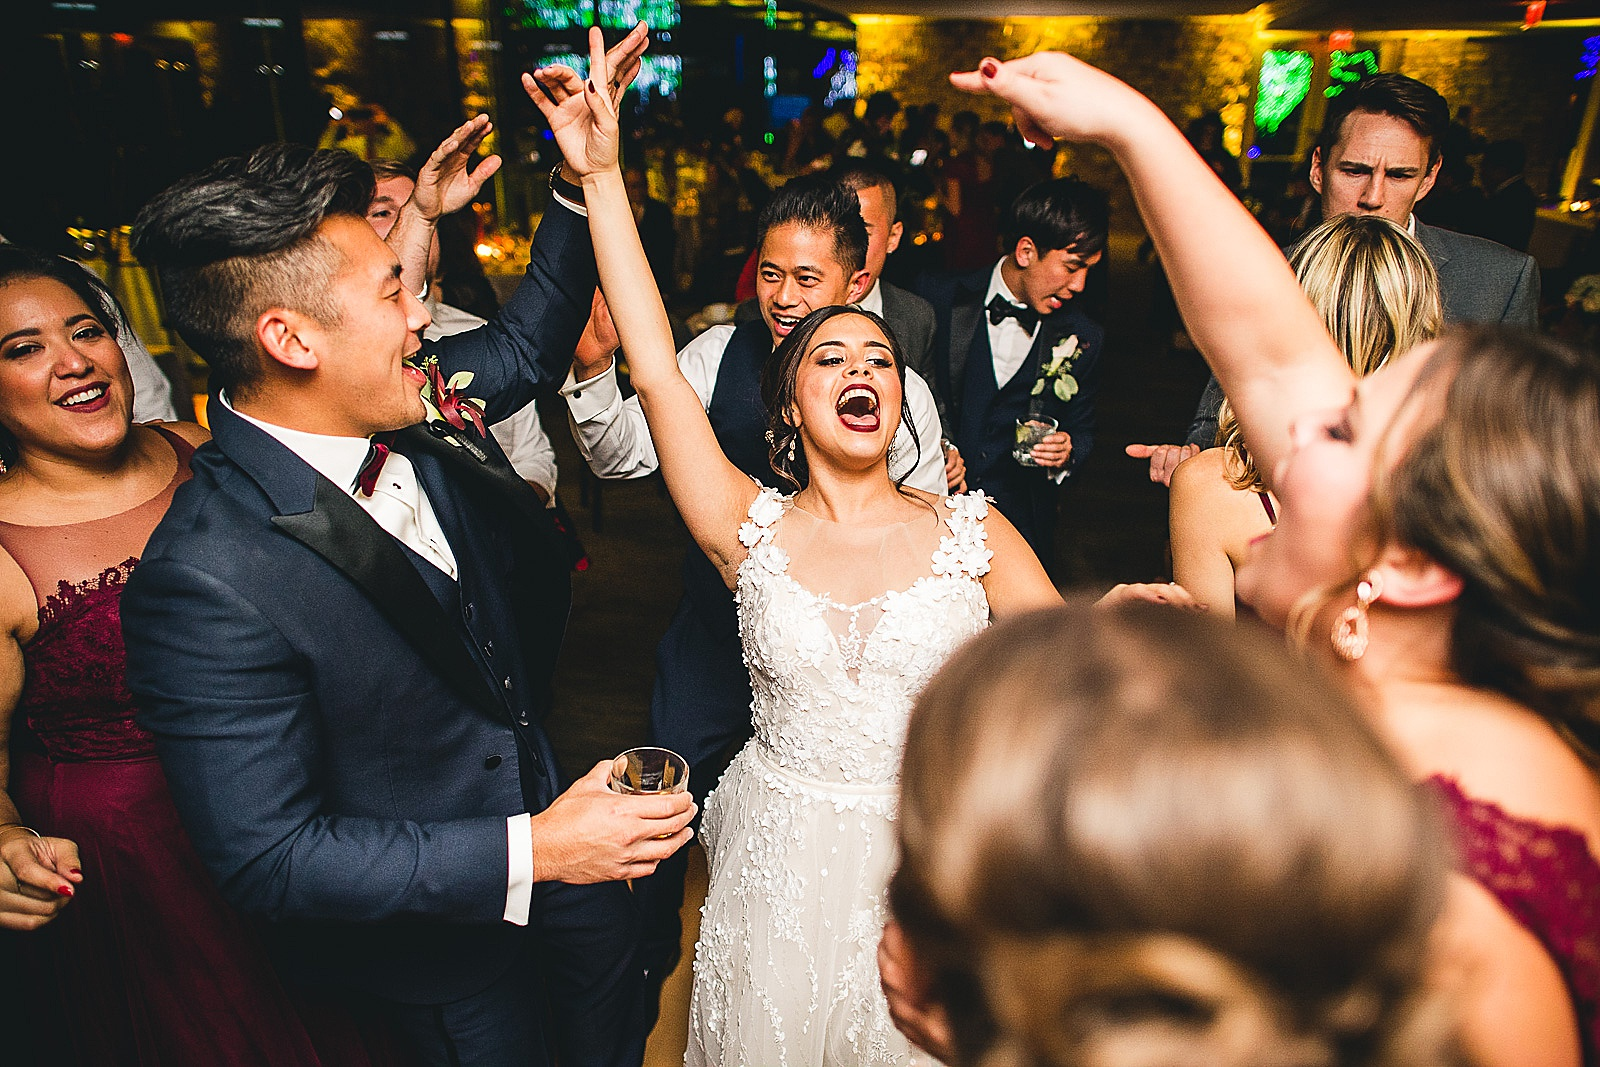 29 bride dancing at reception - Chicago Wedding Photography at Morton Arboretum // Alex + Tim